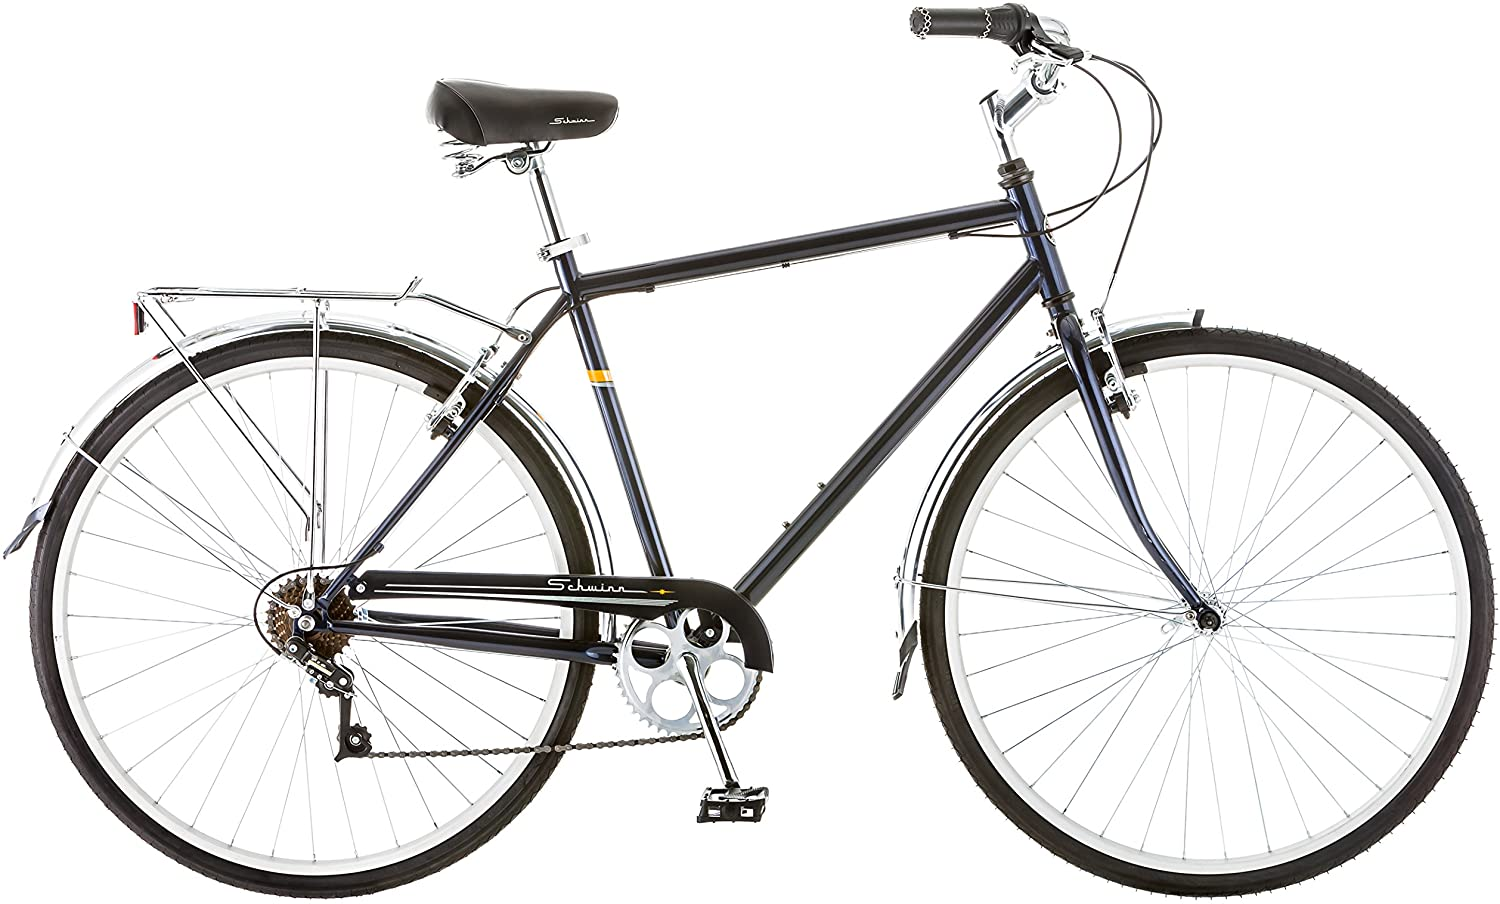 Schwinn Wayfarer Mens & Womens Hybrid Retro-Styled Commuter Bike, 7-Speed